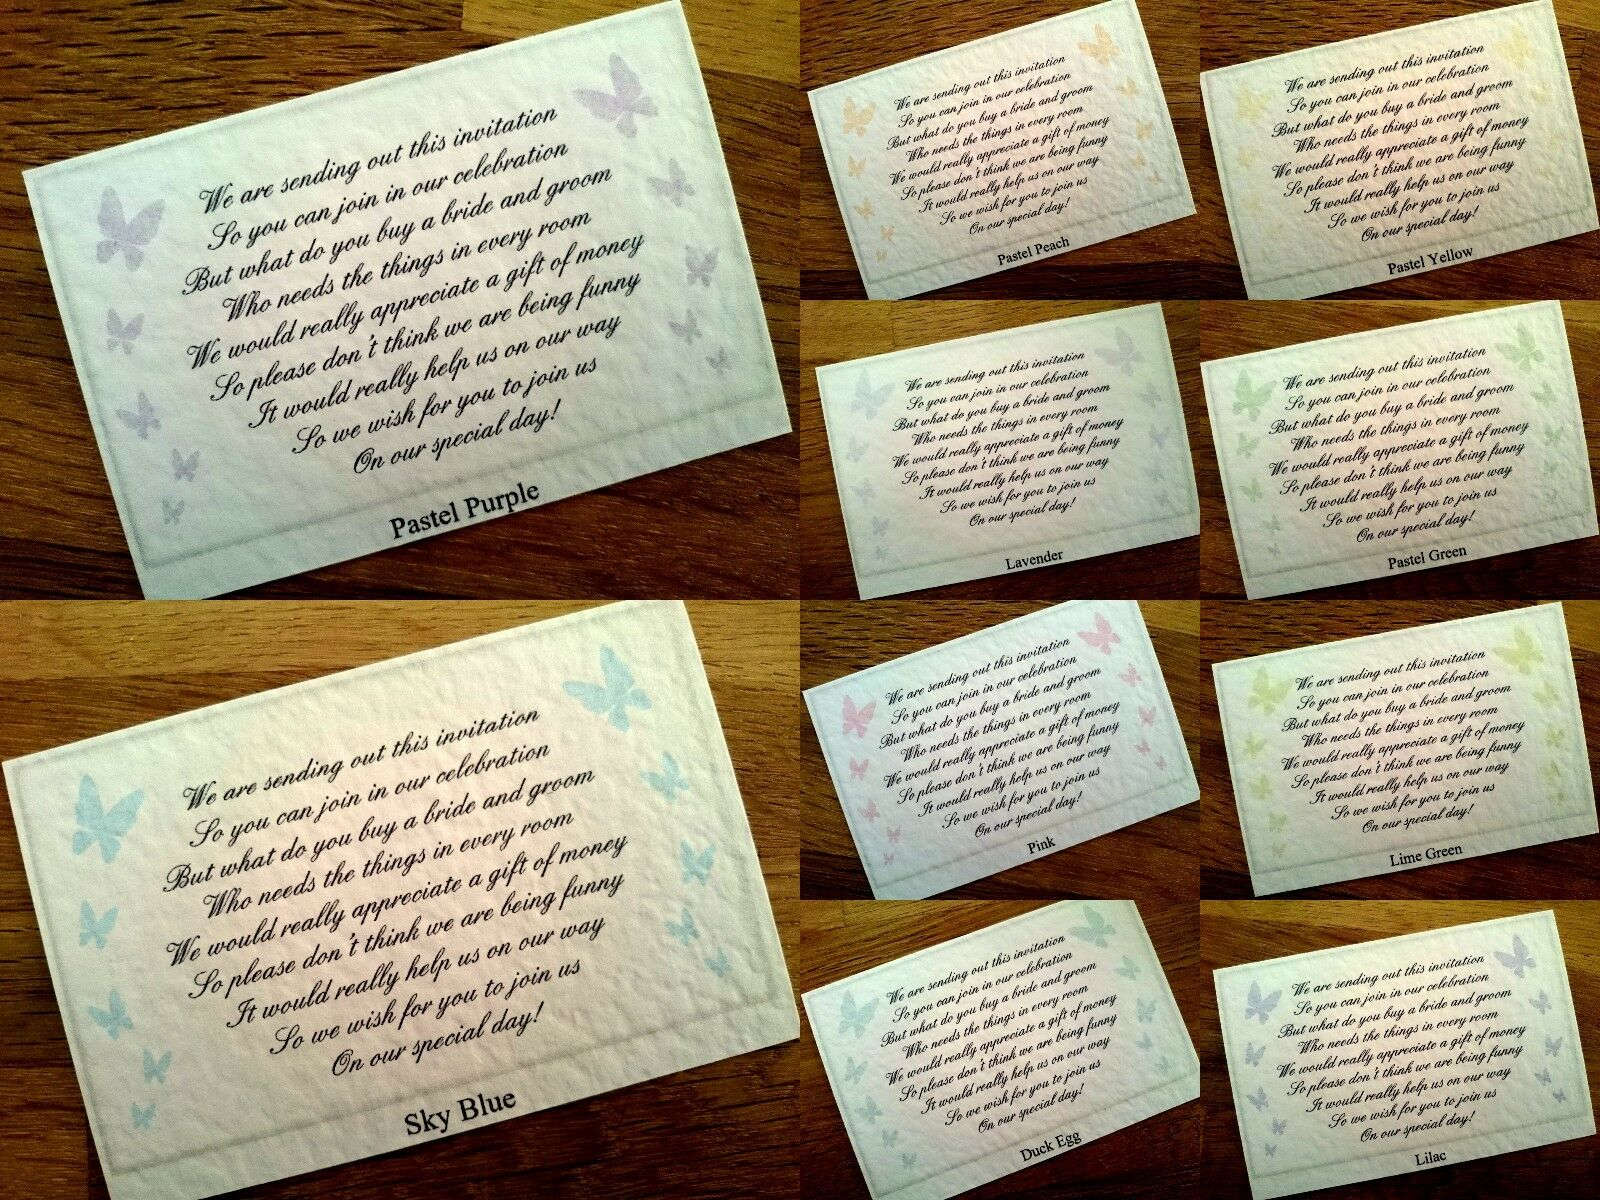 Wedding Poem Gift Cards Asking For Money Or Have Your Own Poem 19